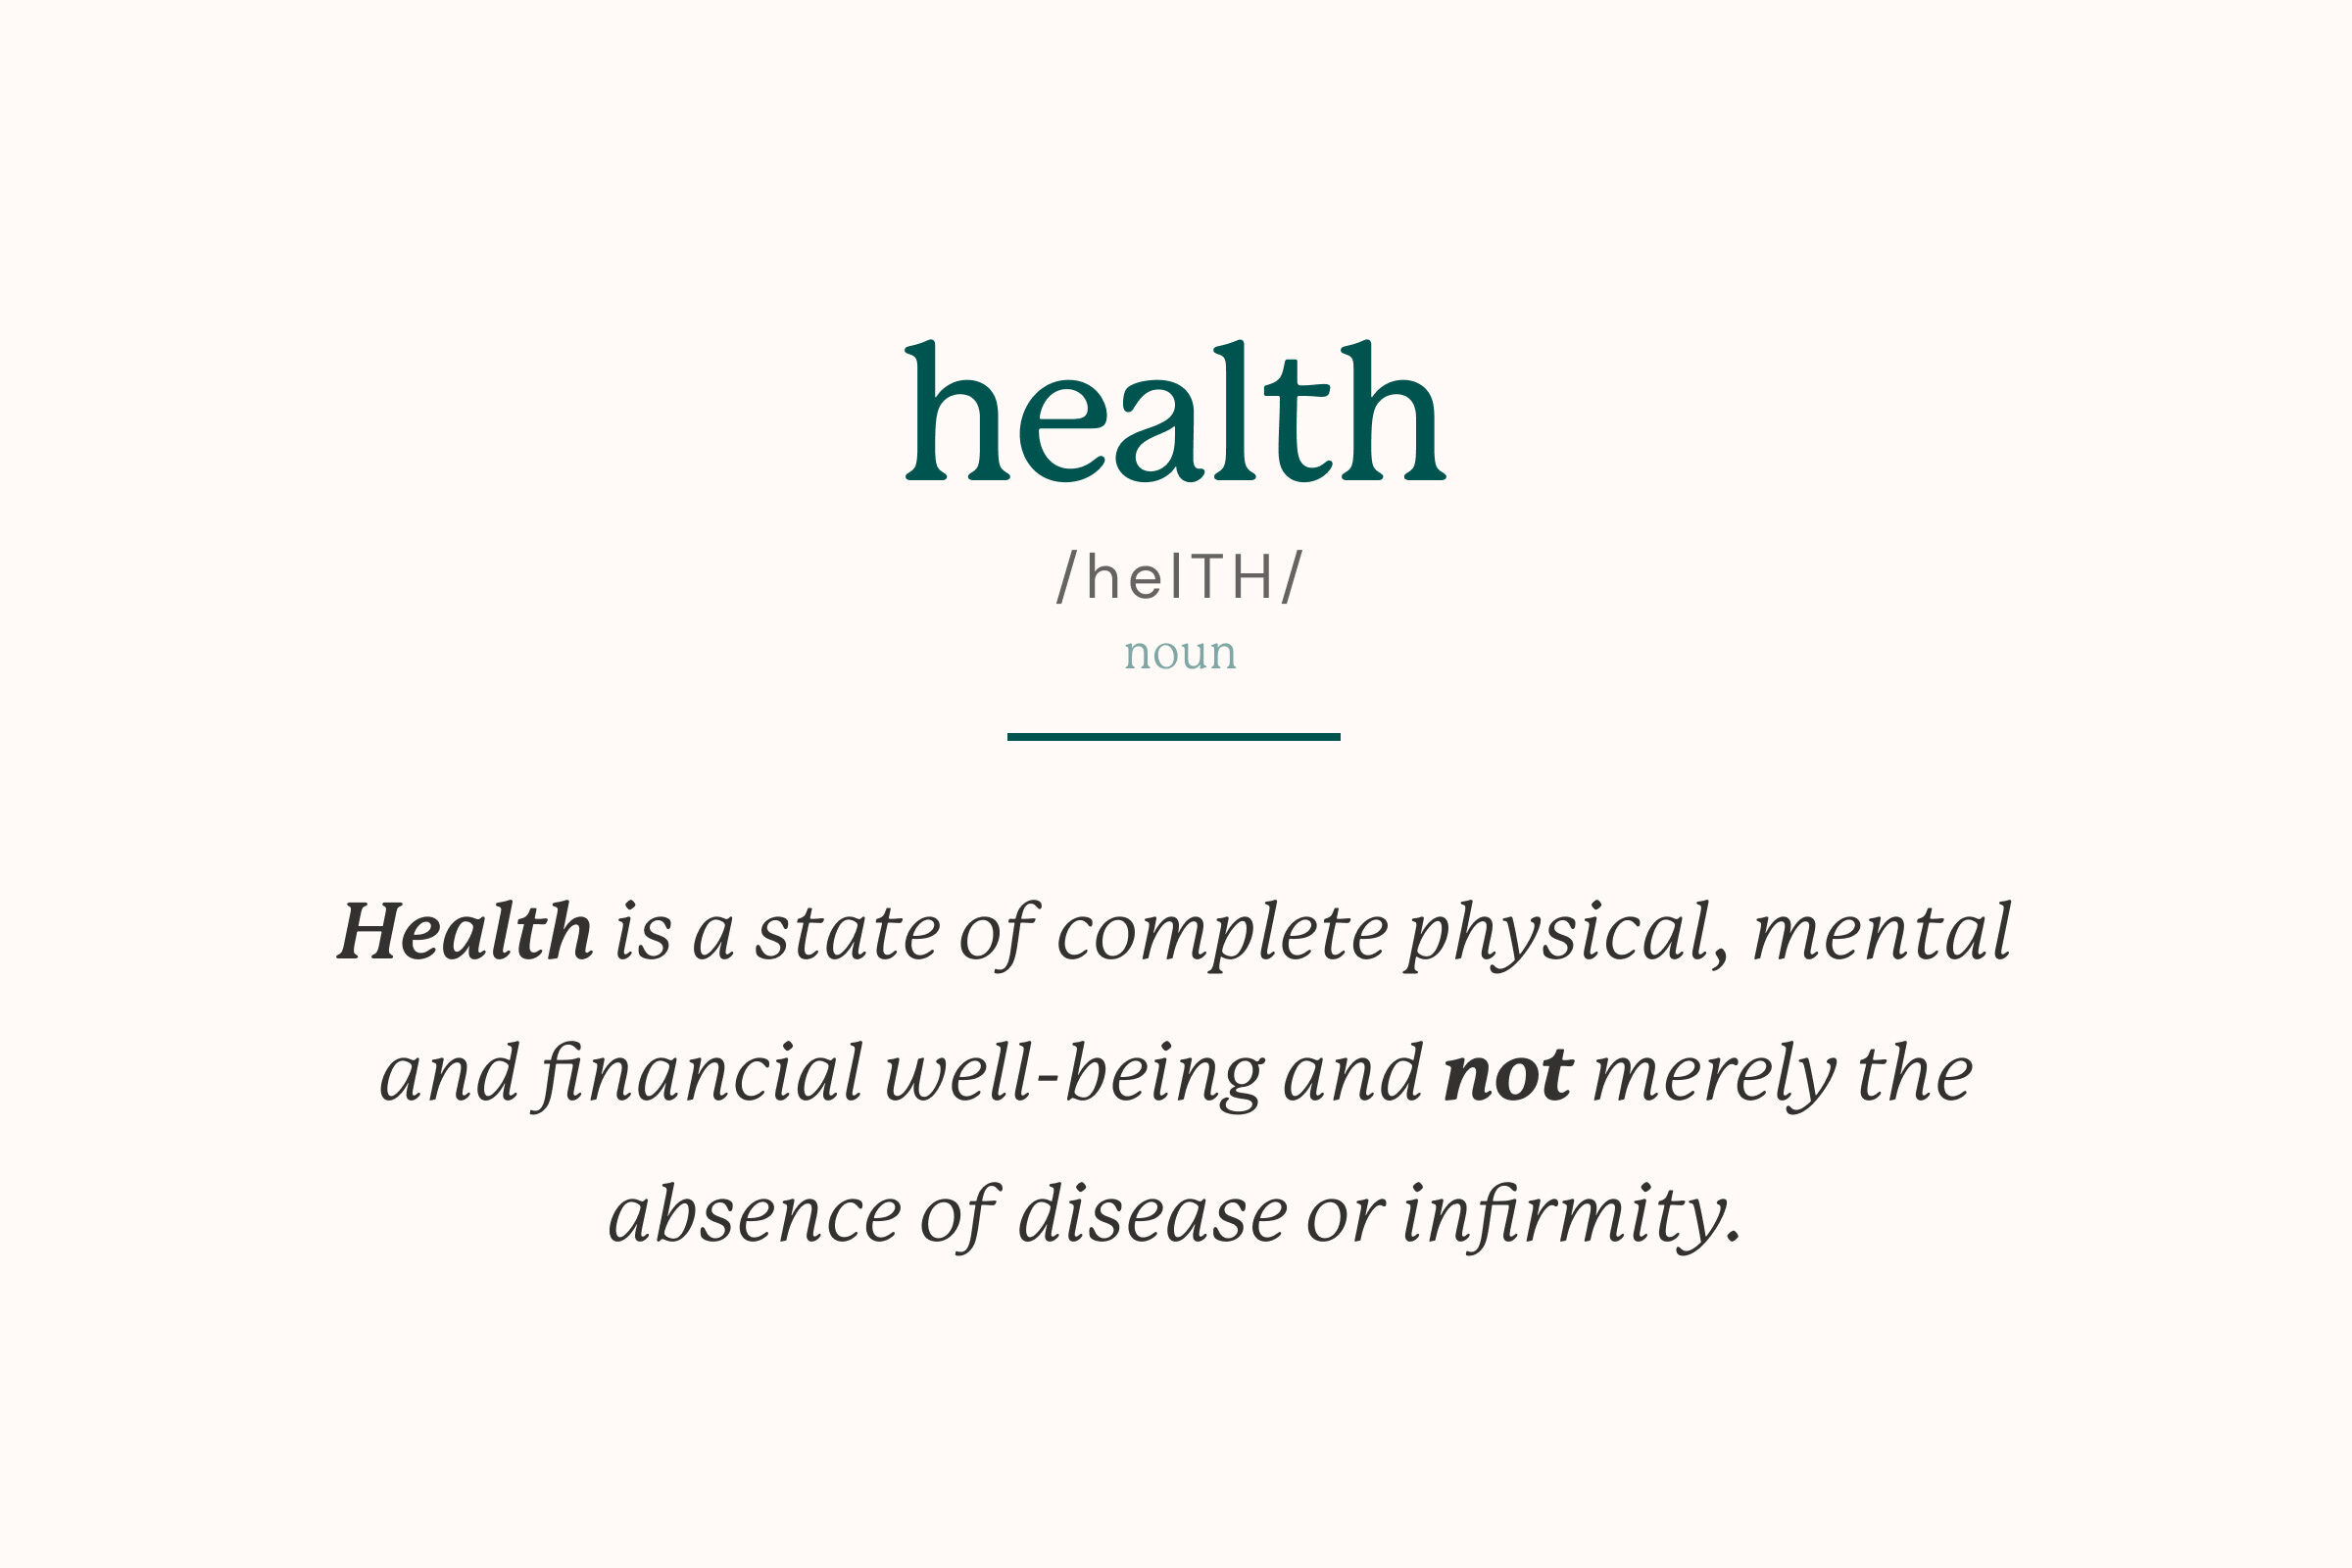 Health is a state of complete physical, mental, and social well-being and not merely the absence of disease or infirmity.